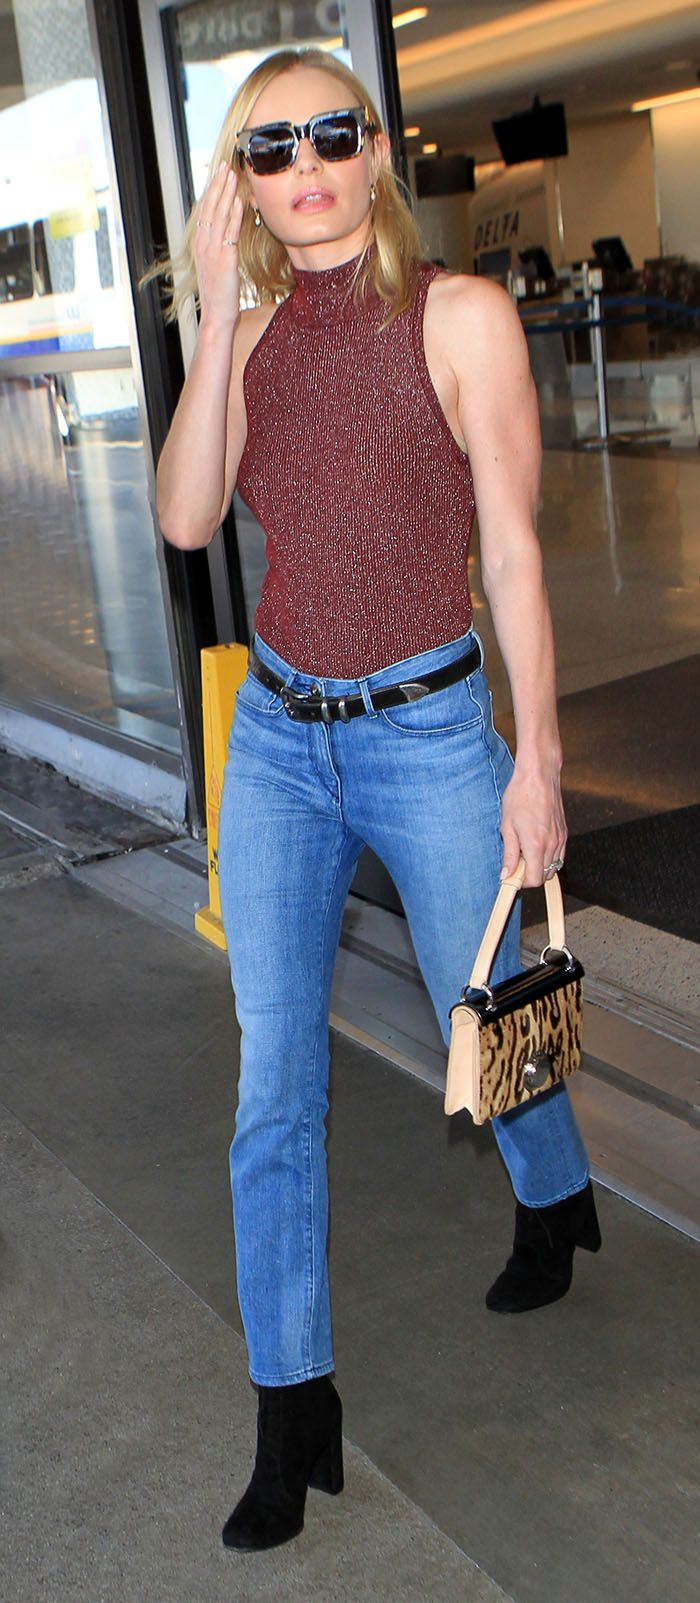 Kate Bosworth Just Wore the Coolest Airport Outfit